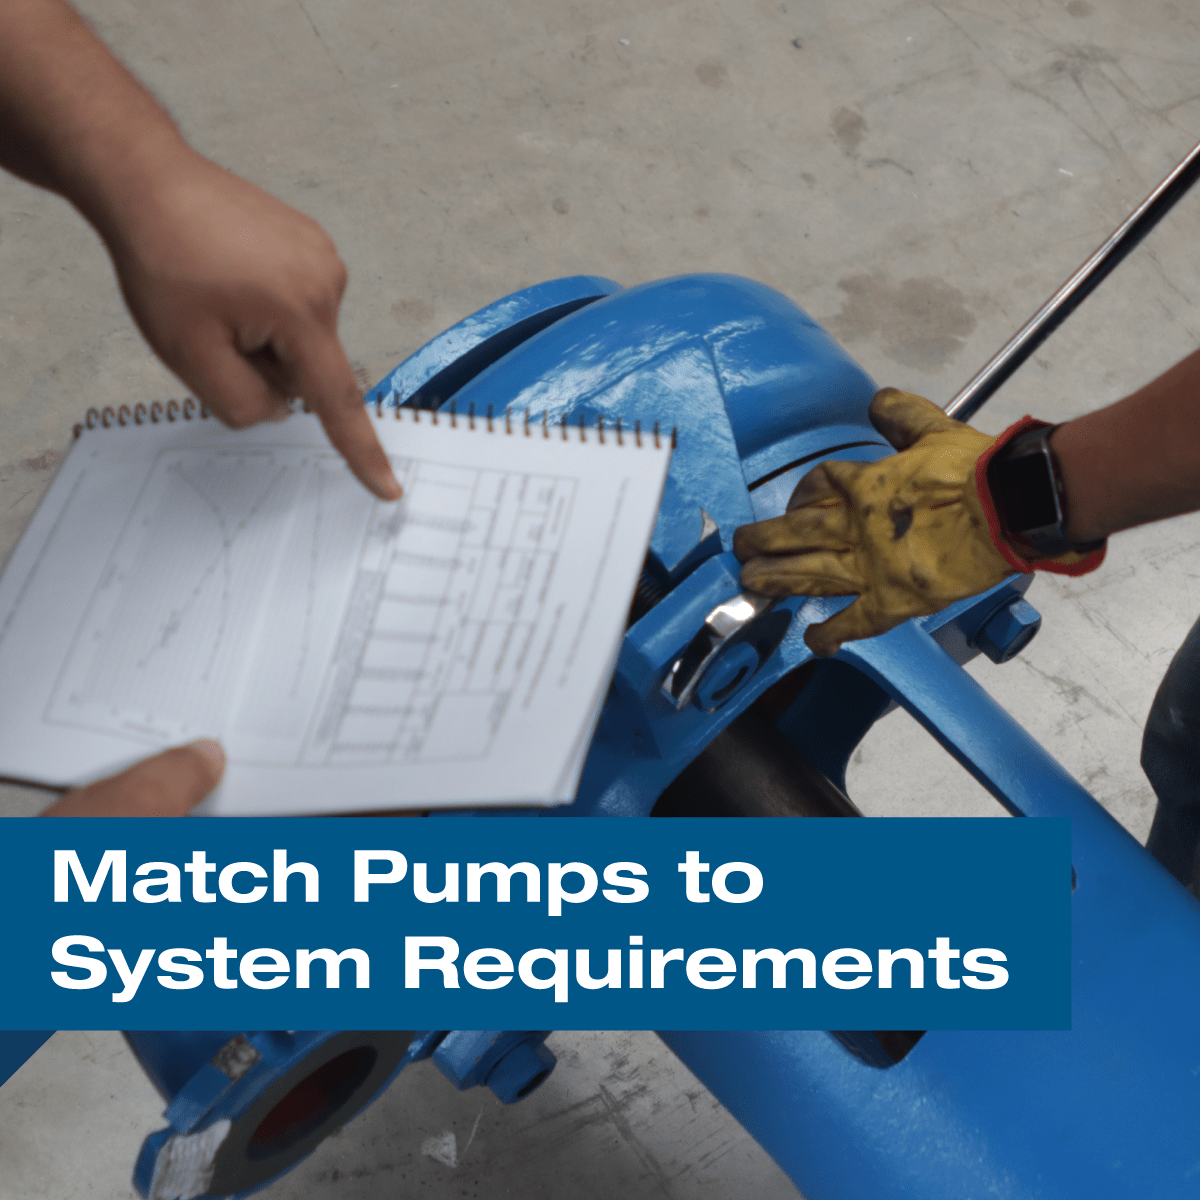 How To Match Pumps to System Requirements for Reduced Energy Consumption?